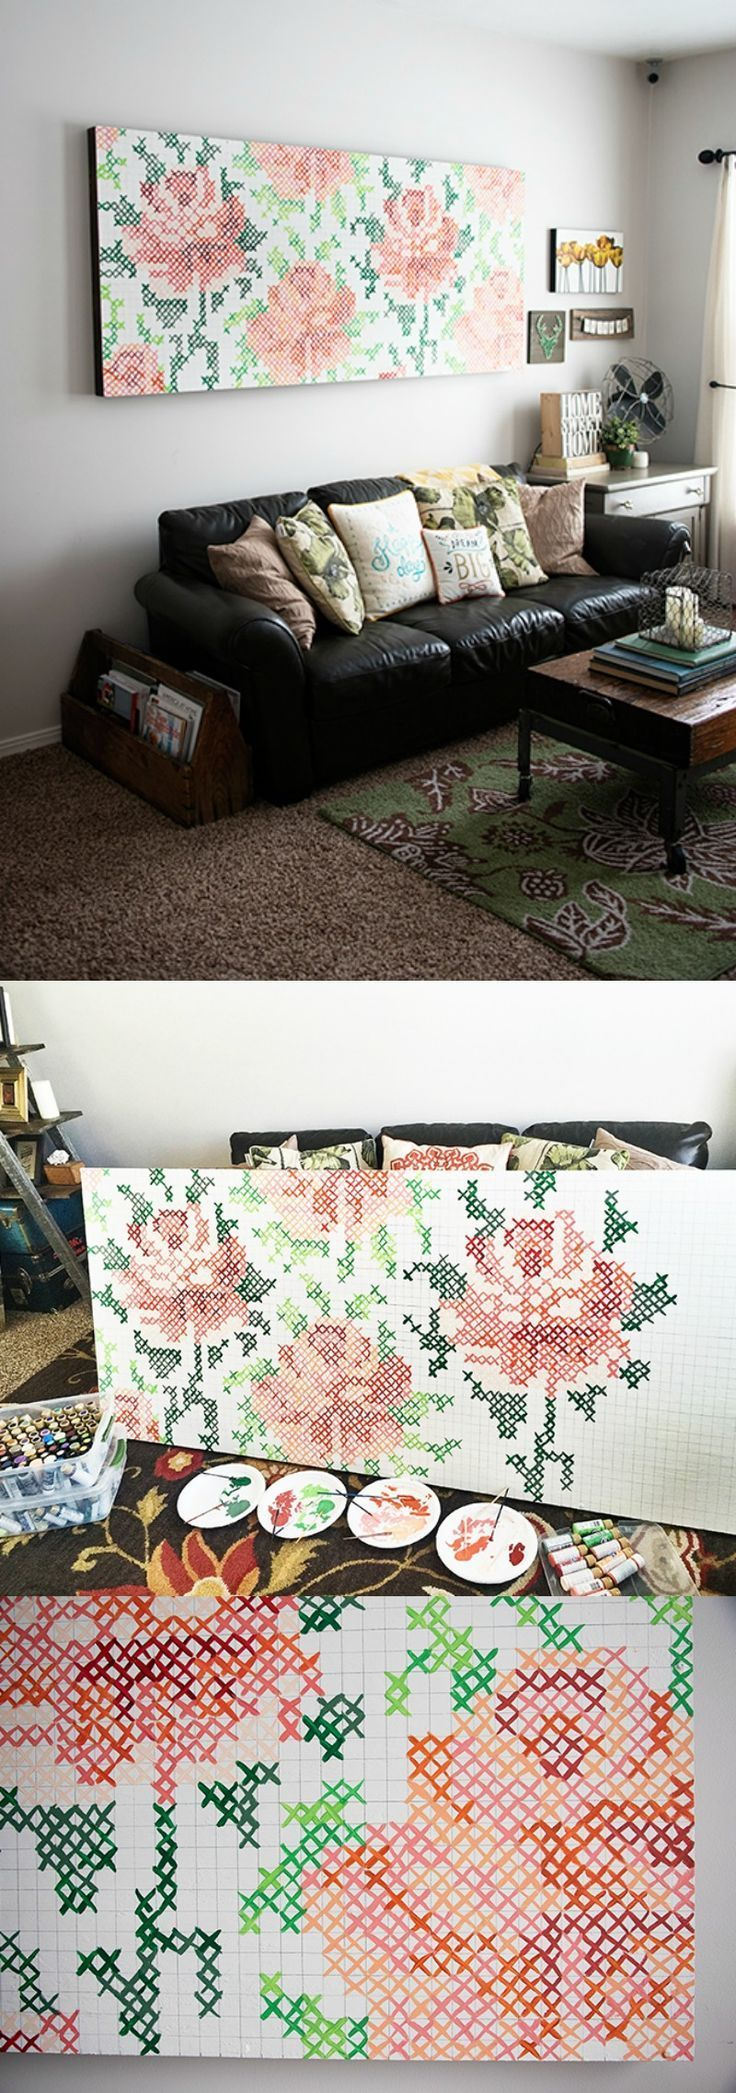 How to make a large scale piece of cross stitch wall art. It's easier than you think and the results are beautiful!